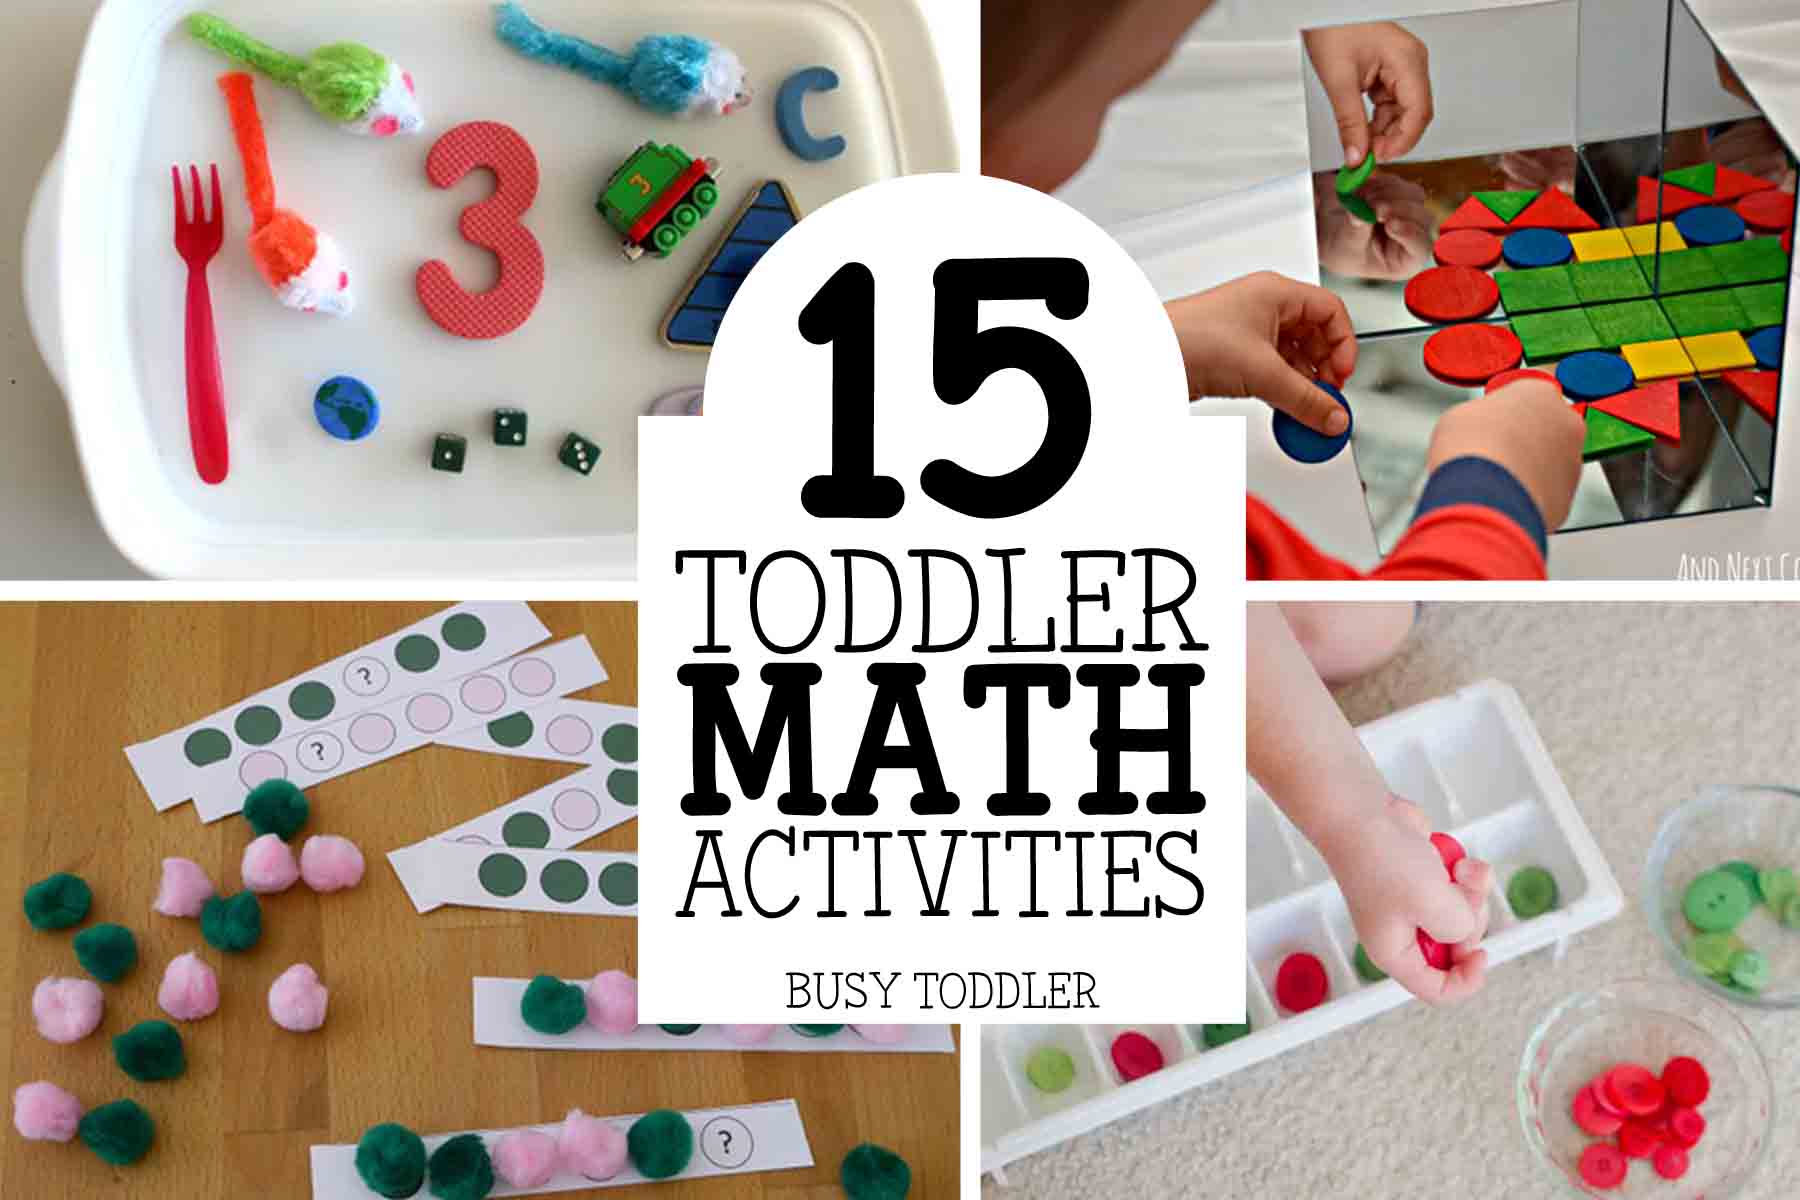 15 Toddler Math Activities Busy Toddler